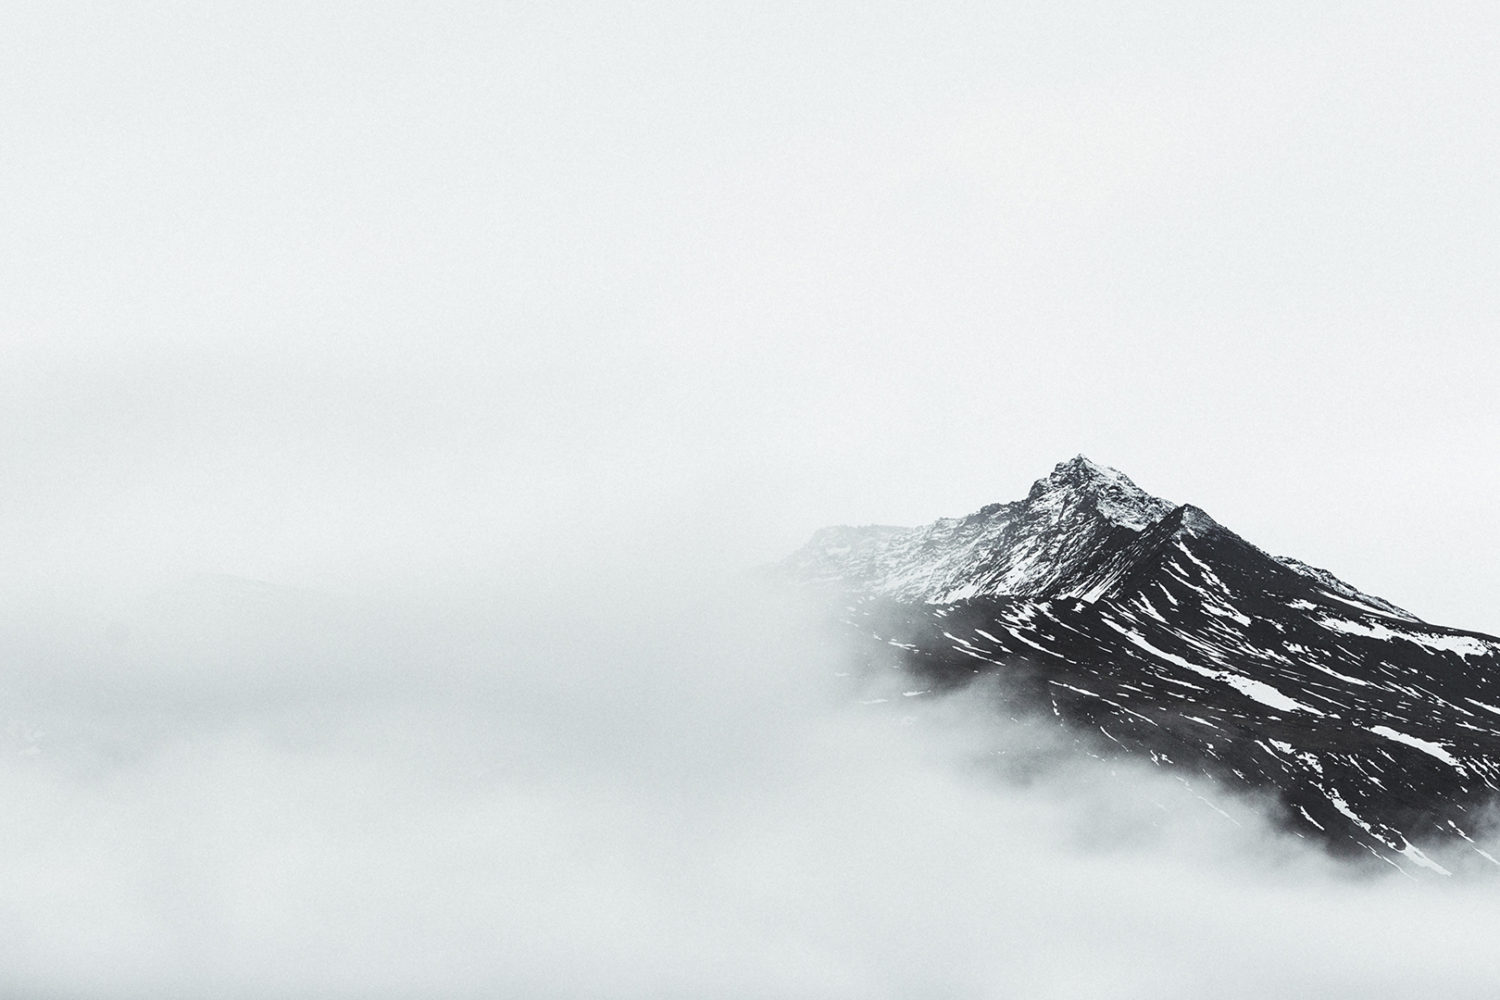 Benjamin Hardman on his epic photography workshop with Alex Strohl